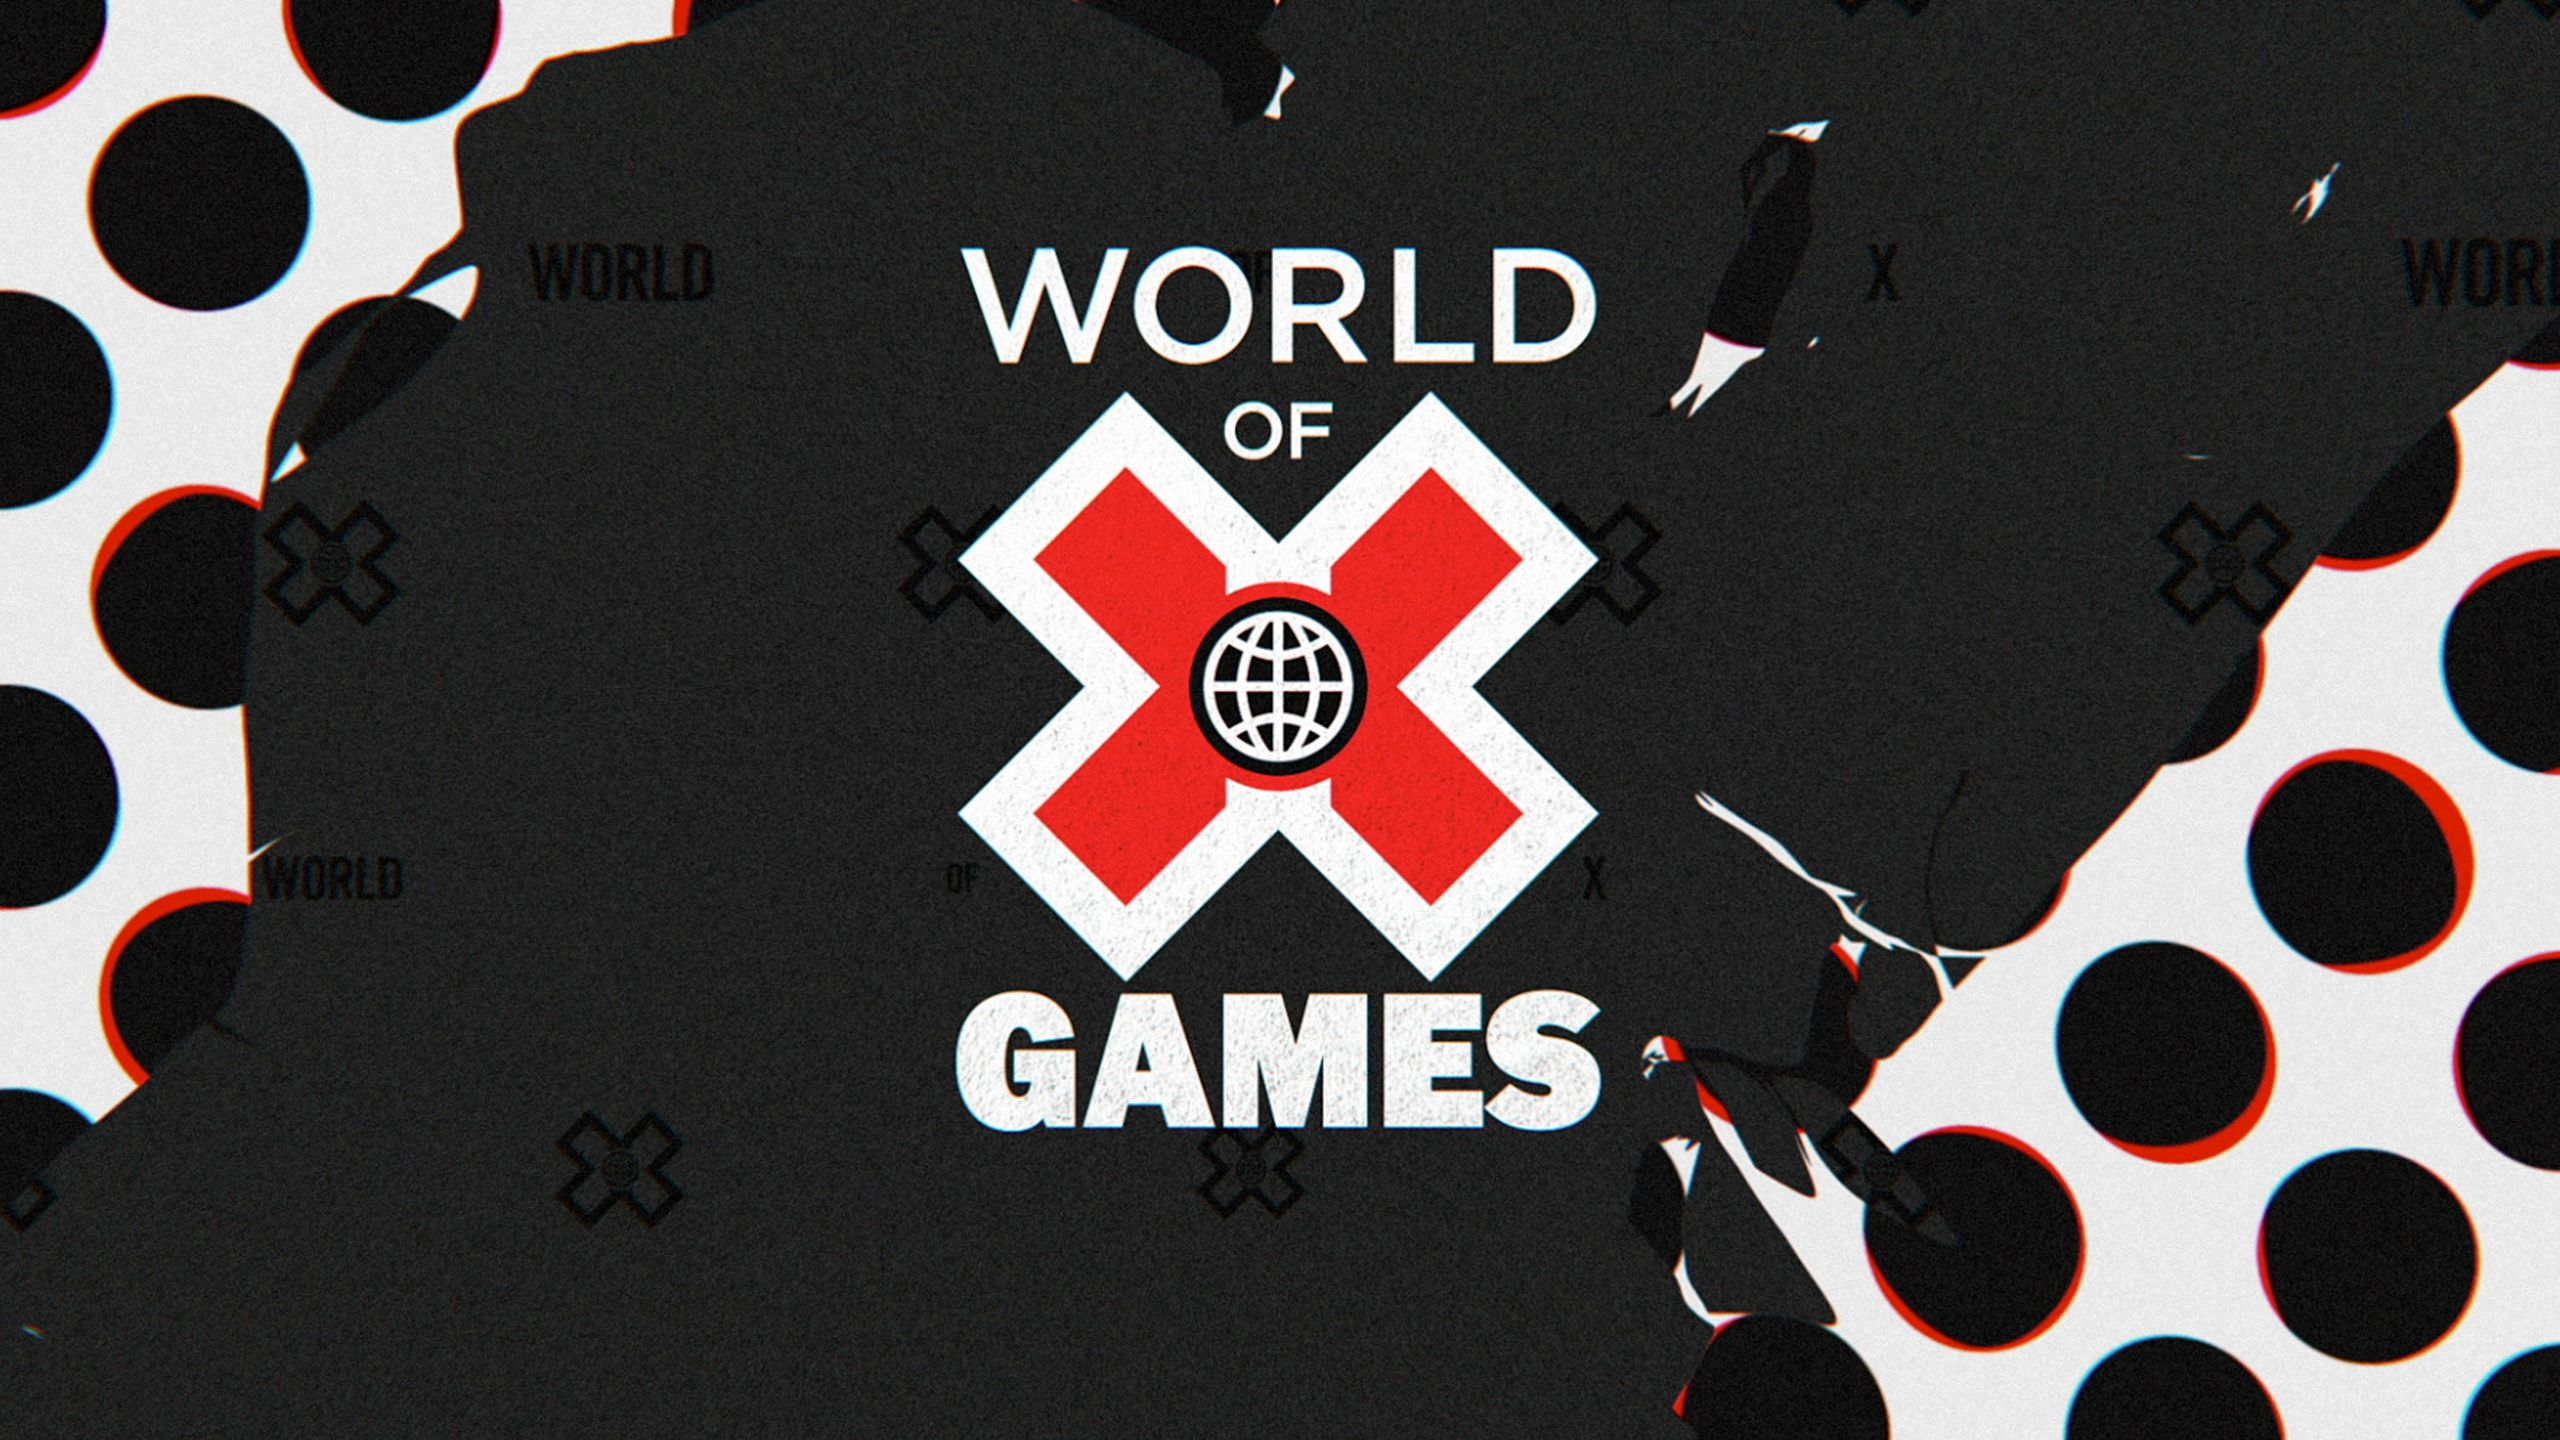 World of X Games: The Kyle Baldock Project